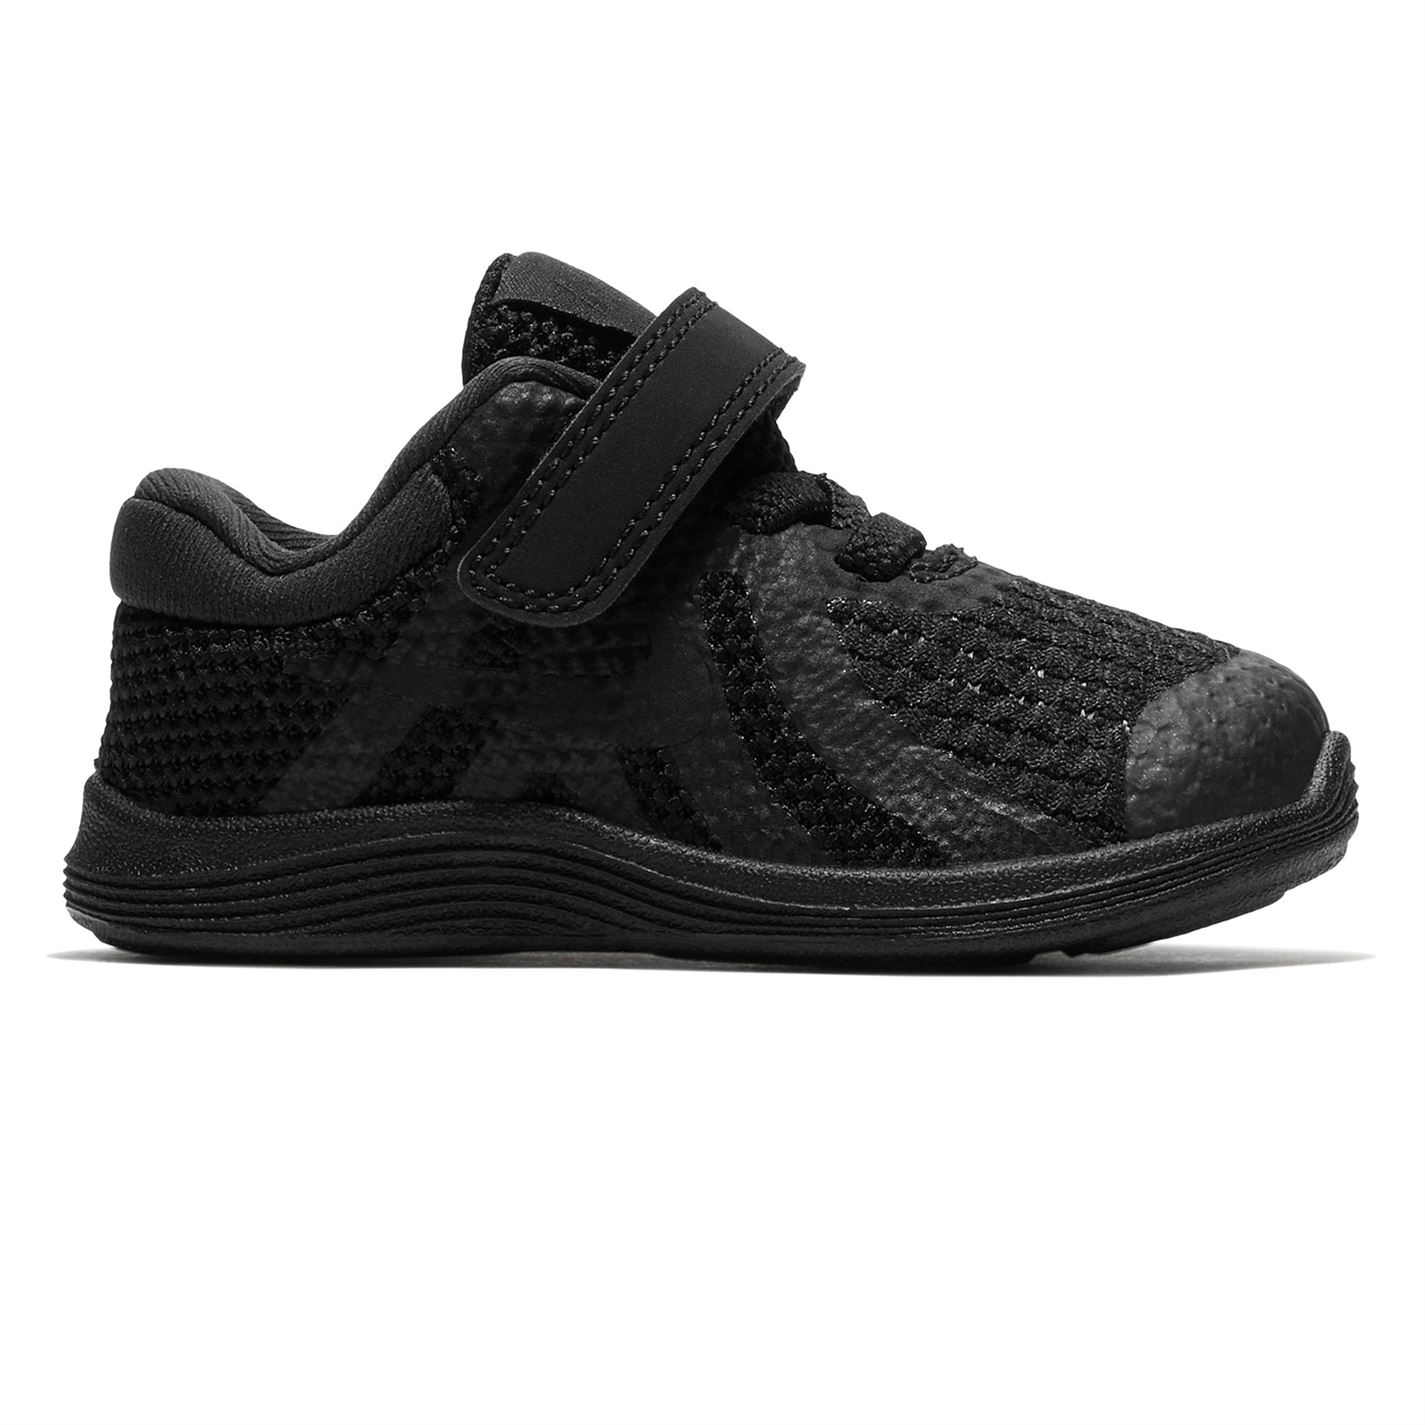 Nike Revolution 4 Infant Boys Trainers Black/Black